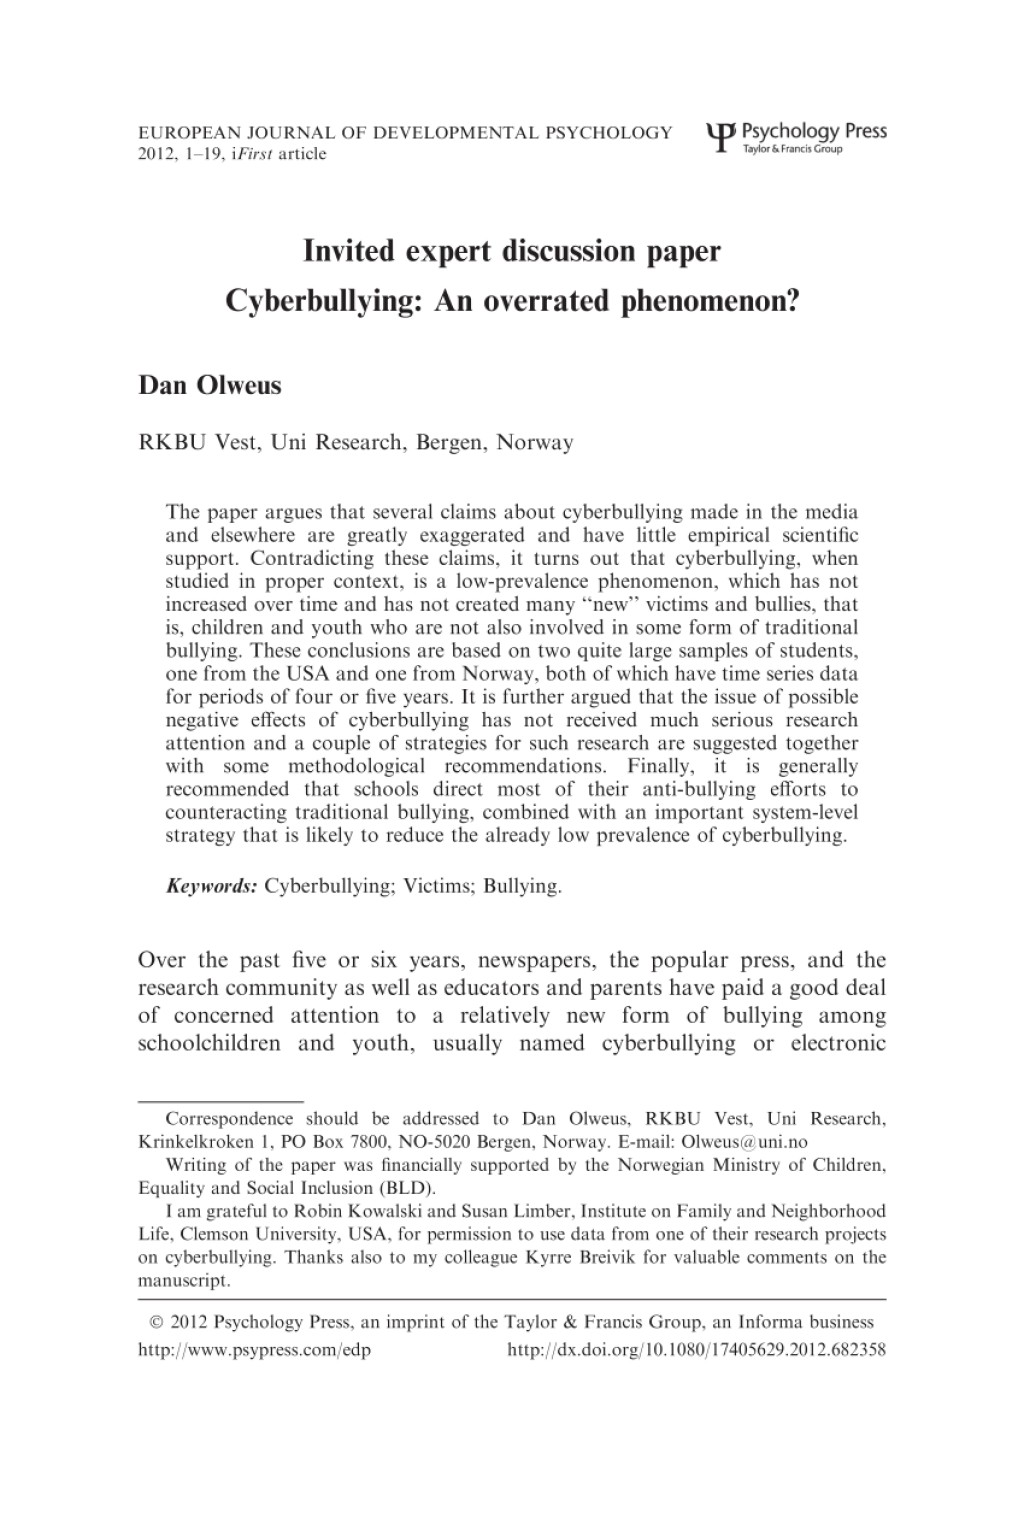 004 Research Paper Largepreview Cyber Phenomenal Bullying Cyberbullying Chapter 1 Pdf Large